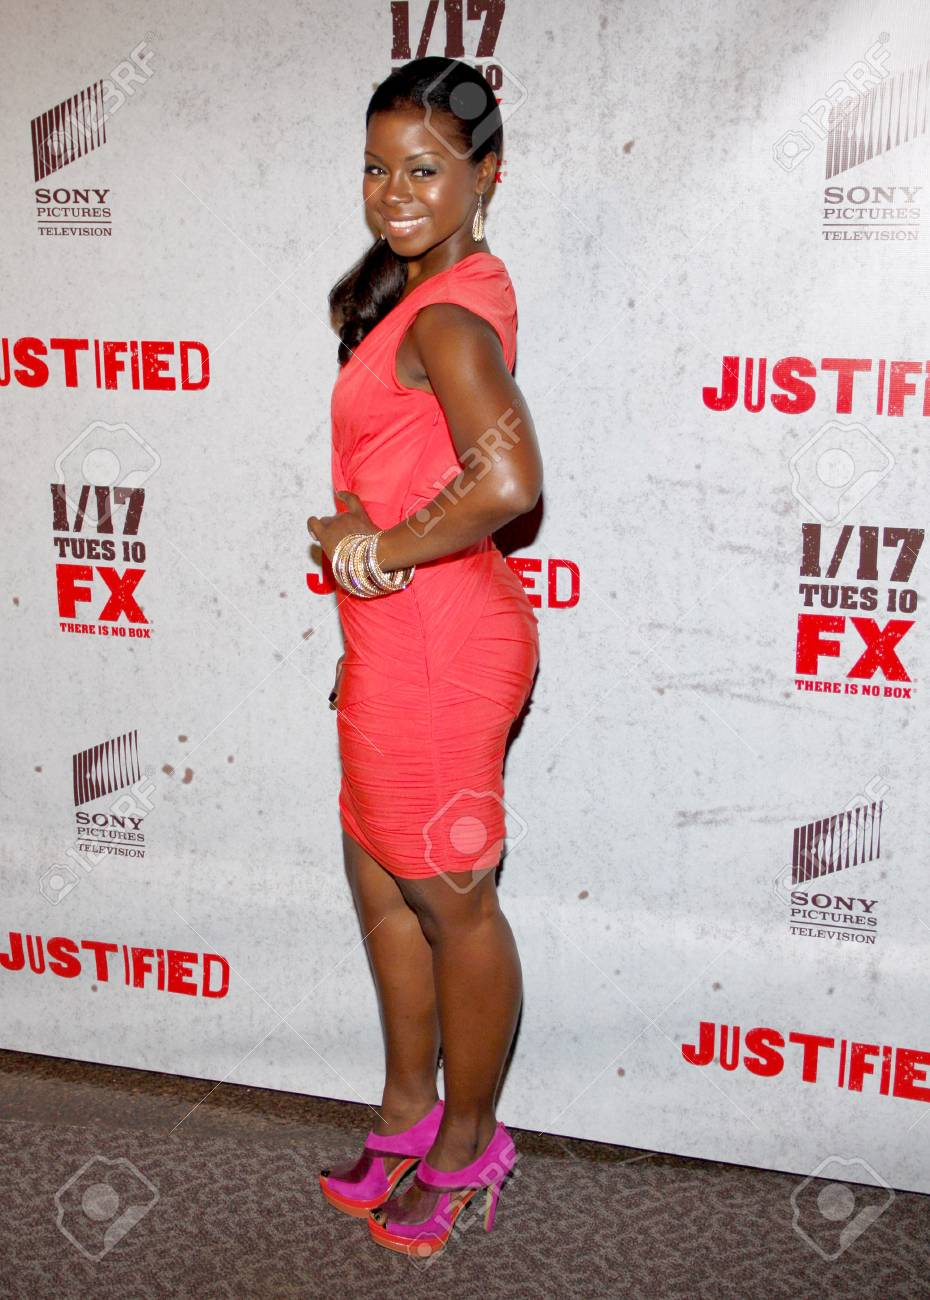 Erica Tazel At The Season 3 Premiere Screening Of Fx S Justified Stock Photo Picture And Royalty Free Image Image 66239302 Tazel soon started auditioning for film and tv roles, and went on to land guest spots on. https www 123rf com photo 66239302 erica tazel at the season 3 premiere screening of fx s justified held at the dga theater in hollywoo html